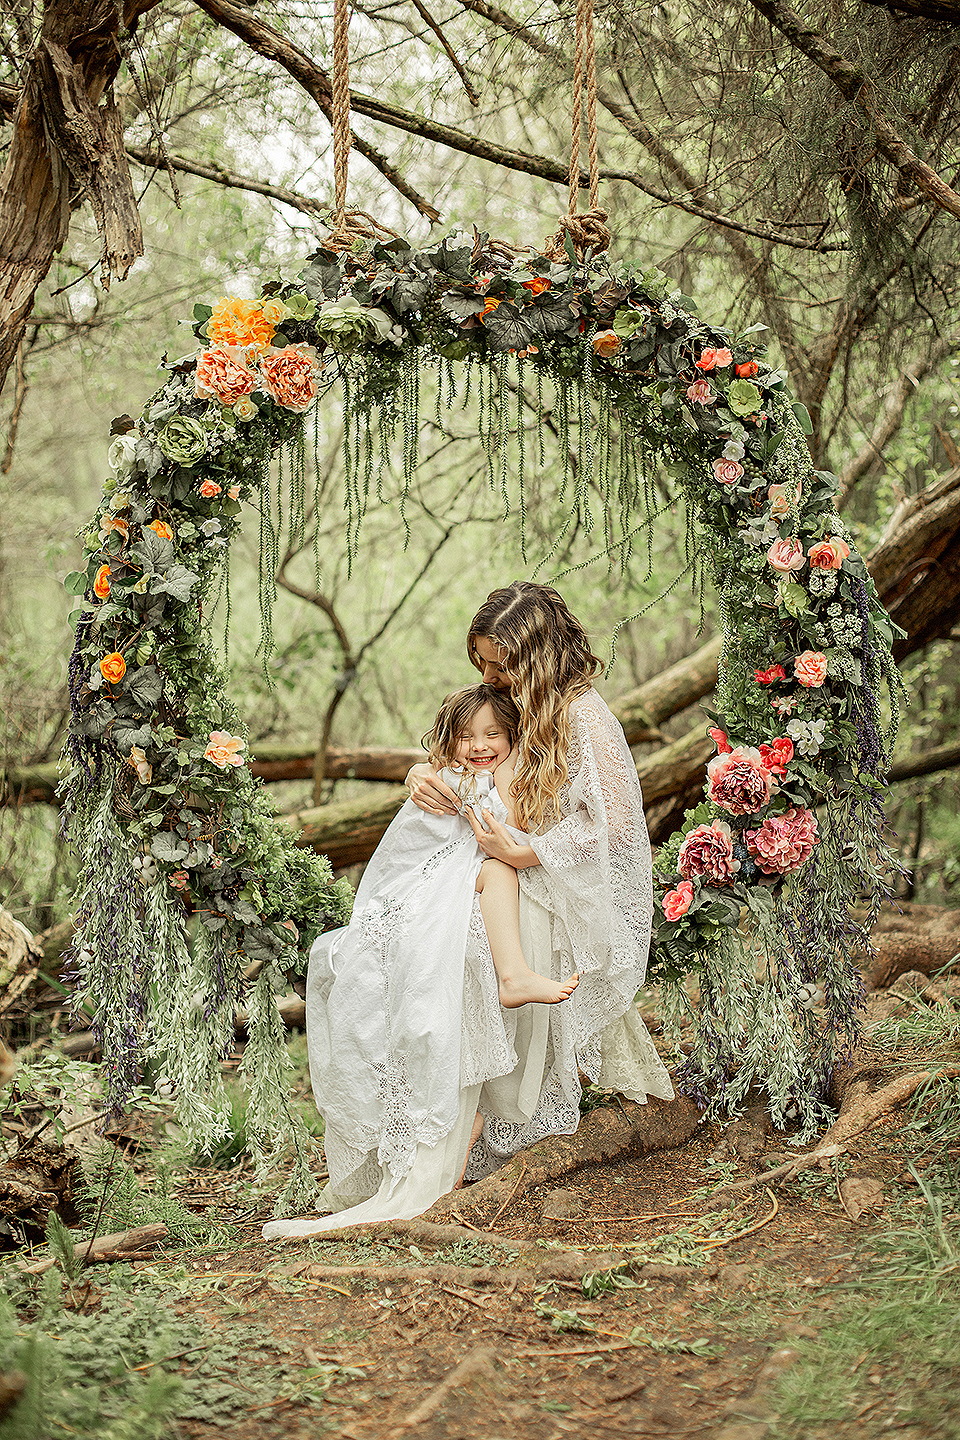 CURRENT SPECIAL-MOTHER'S DAY FAIRY SWING SESSION!